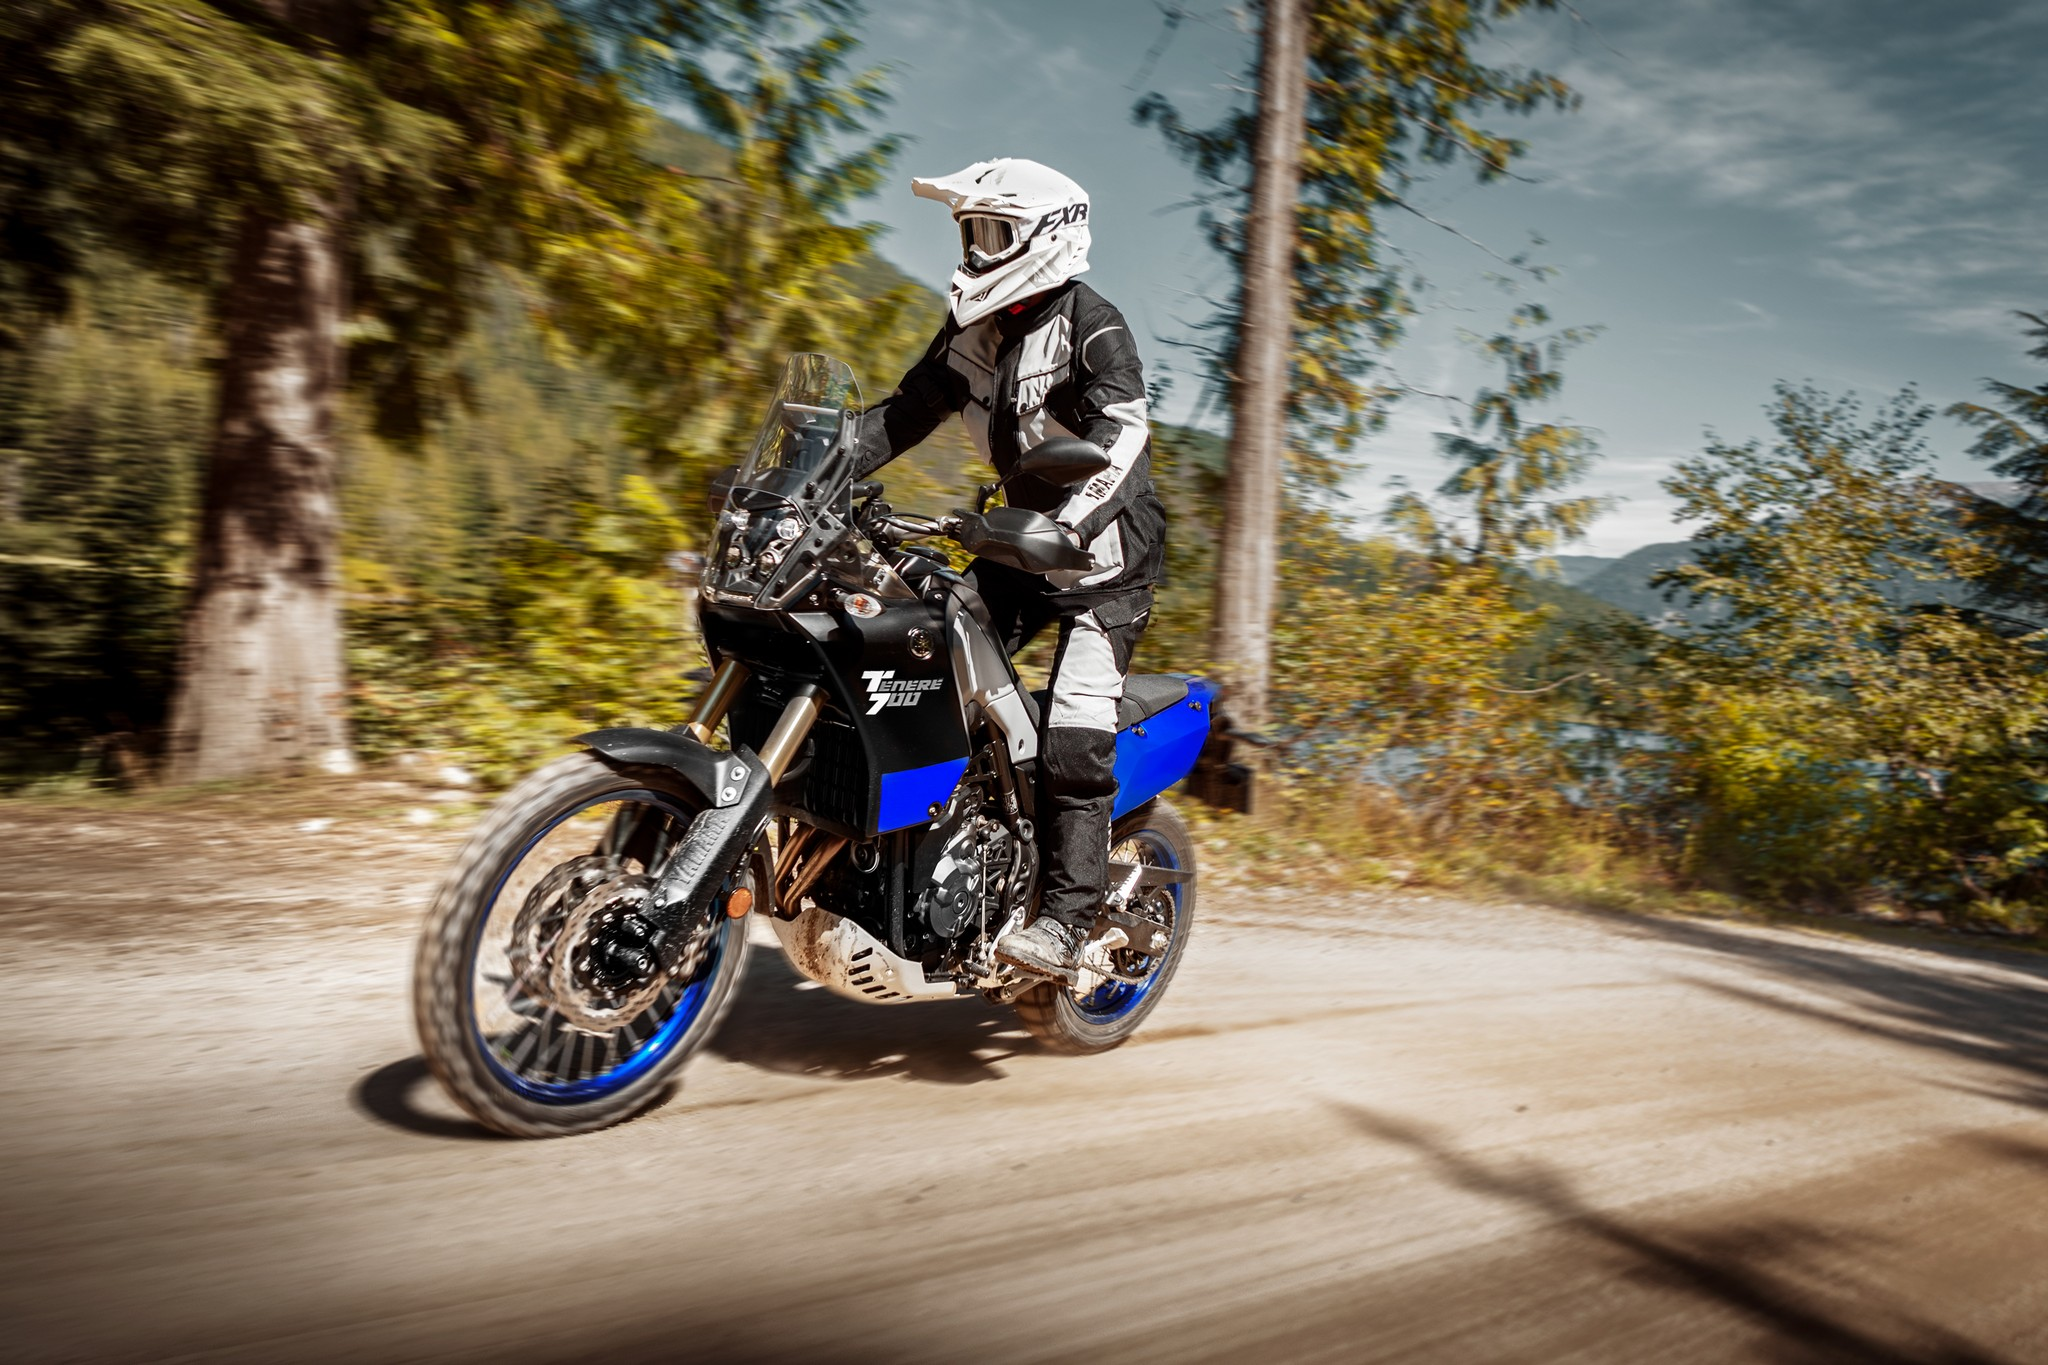 A view of a rider enjoying the new 2021 Yamaha Tenere 700